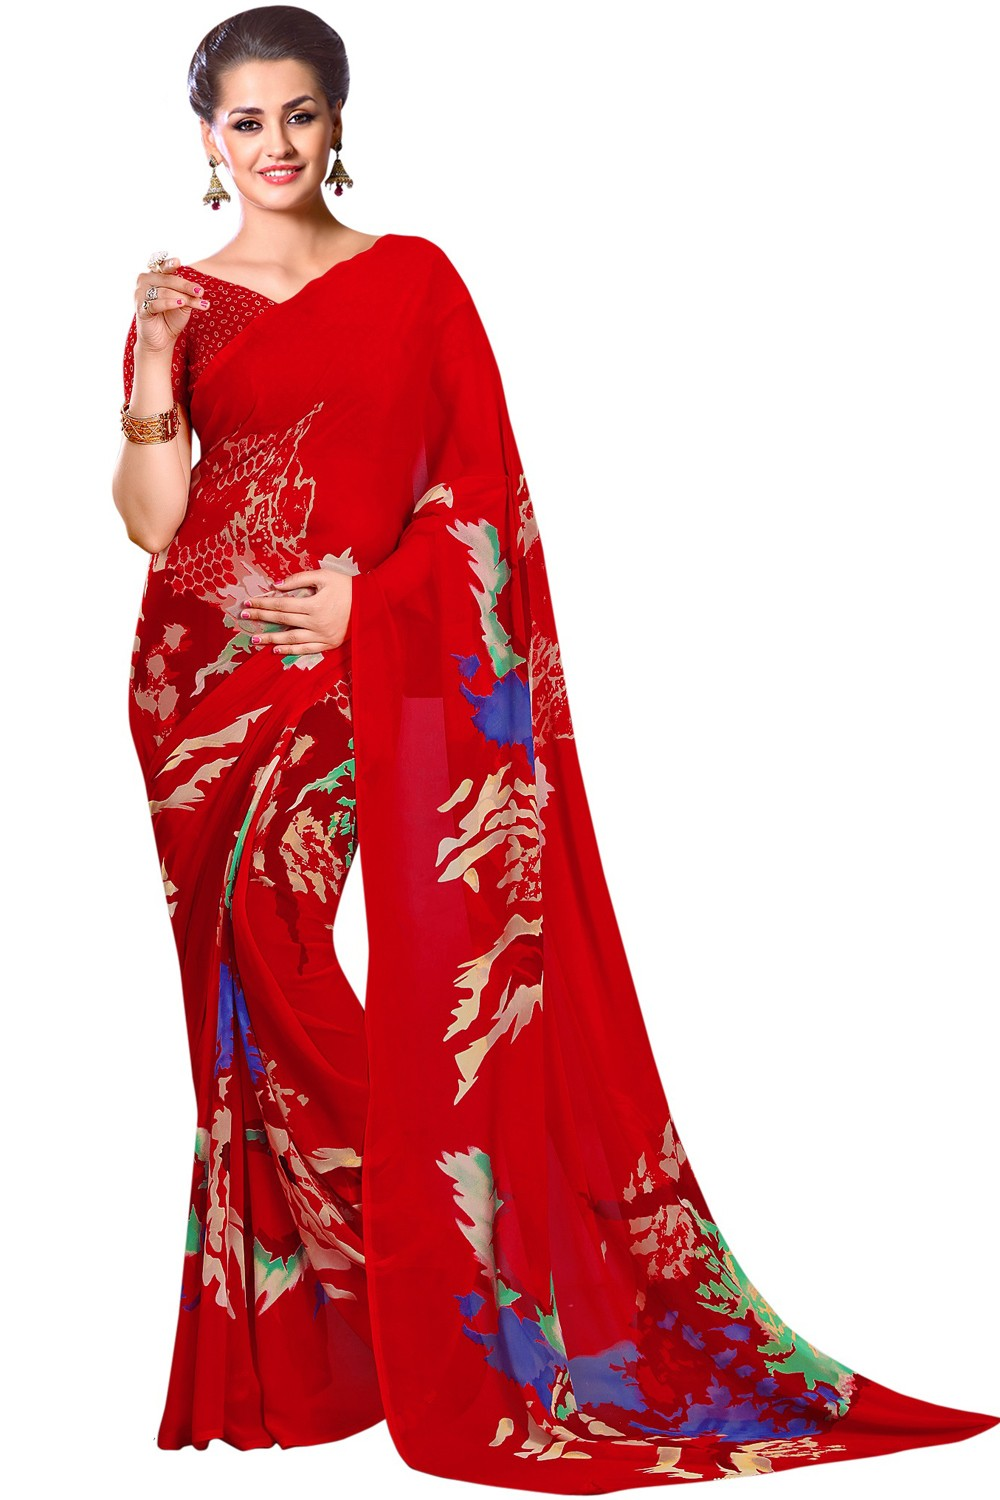 Paaneri Dark Red  Color Floral Print Georgette Printed Saree Product Code-16120023412